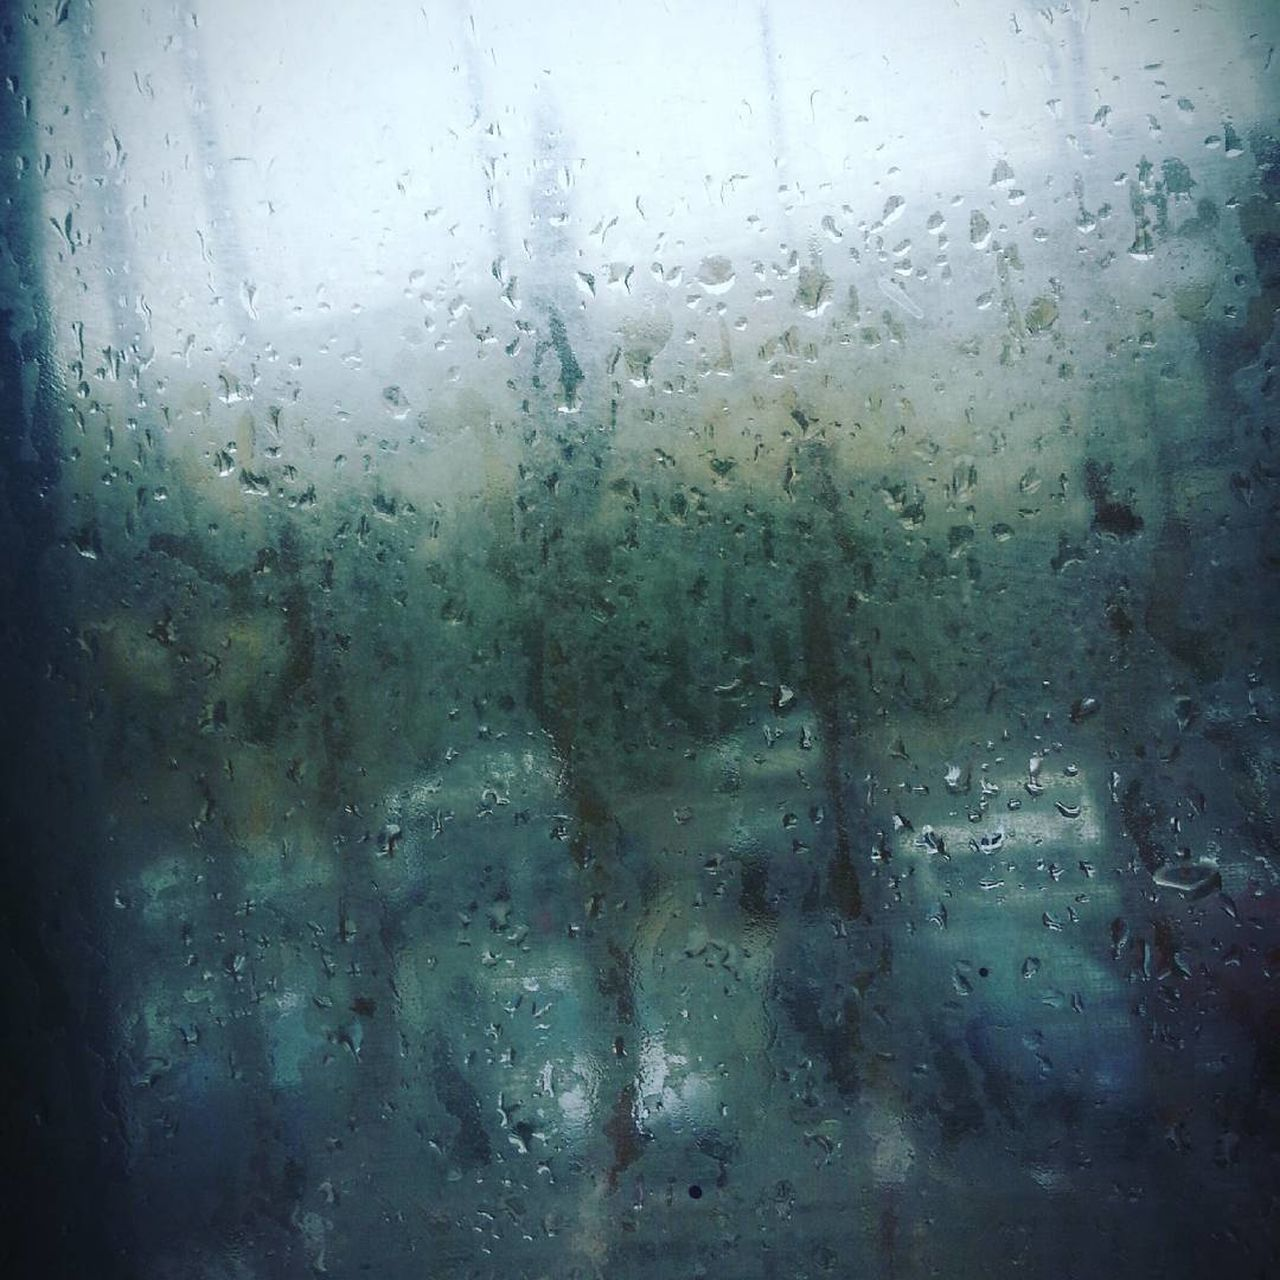 full frame, window, backgrounds, drop, wet, rain, glass - material, condensation, close-up, indoors, water, no people, raindrop, day